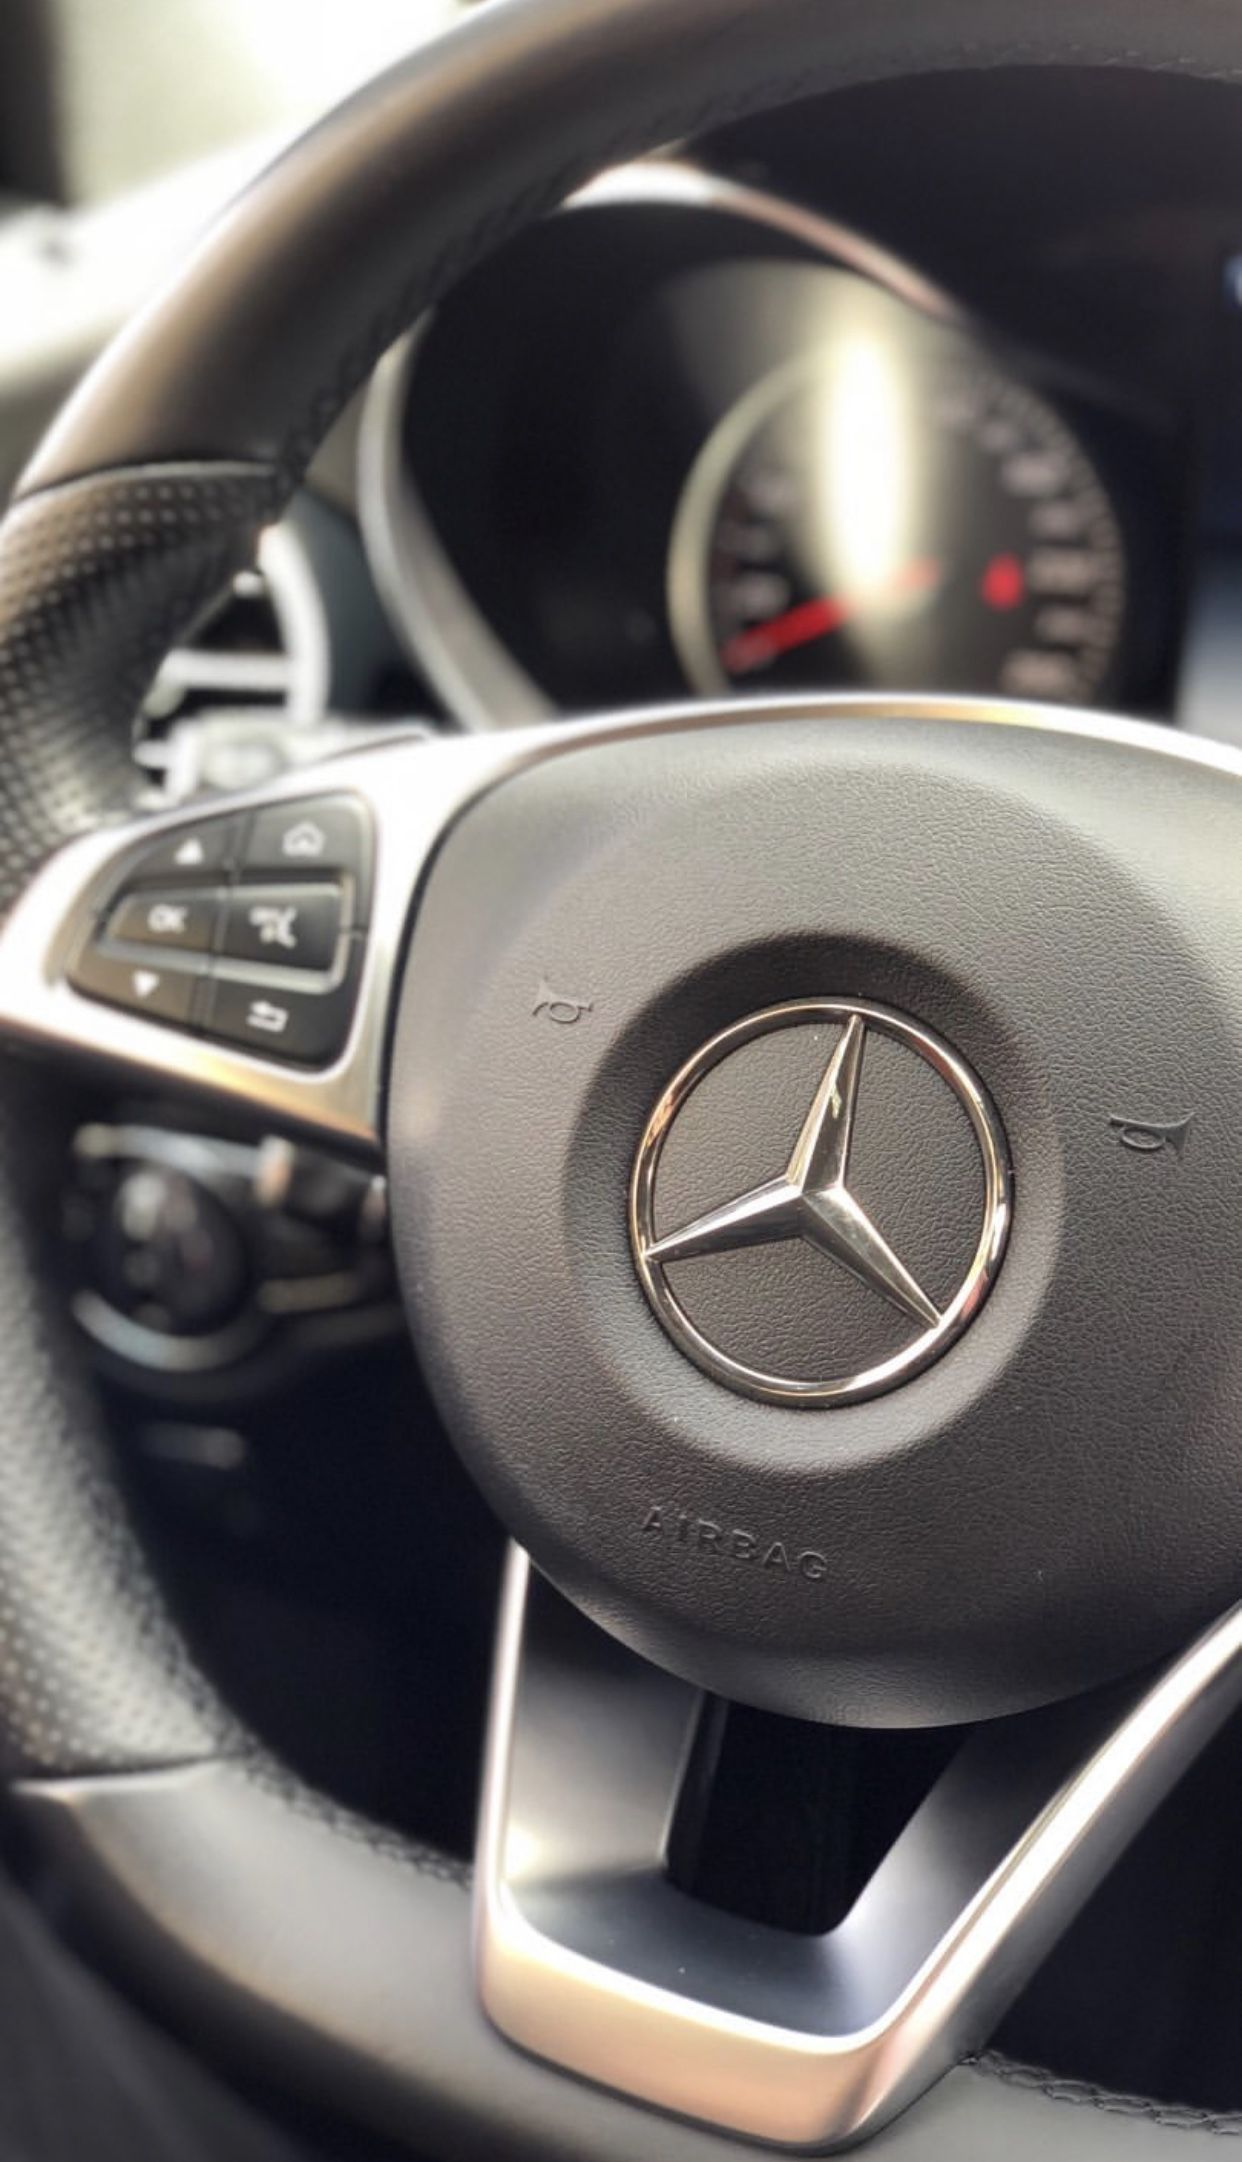 Untitled In 2020 Mercedes Car Driving Photography Luxury Cars